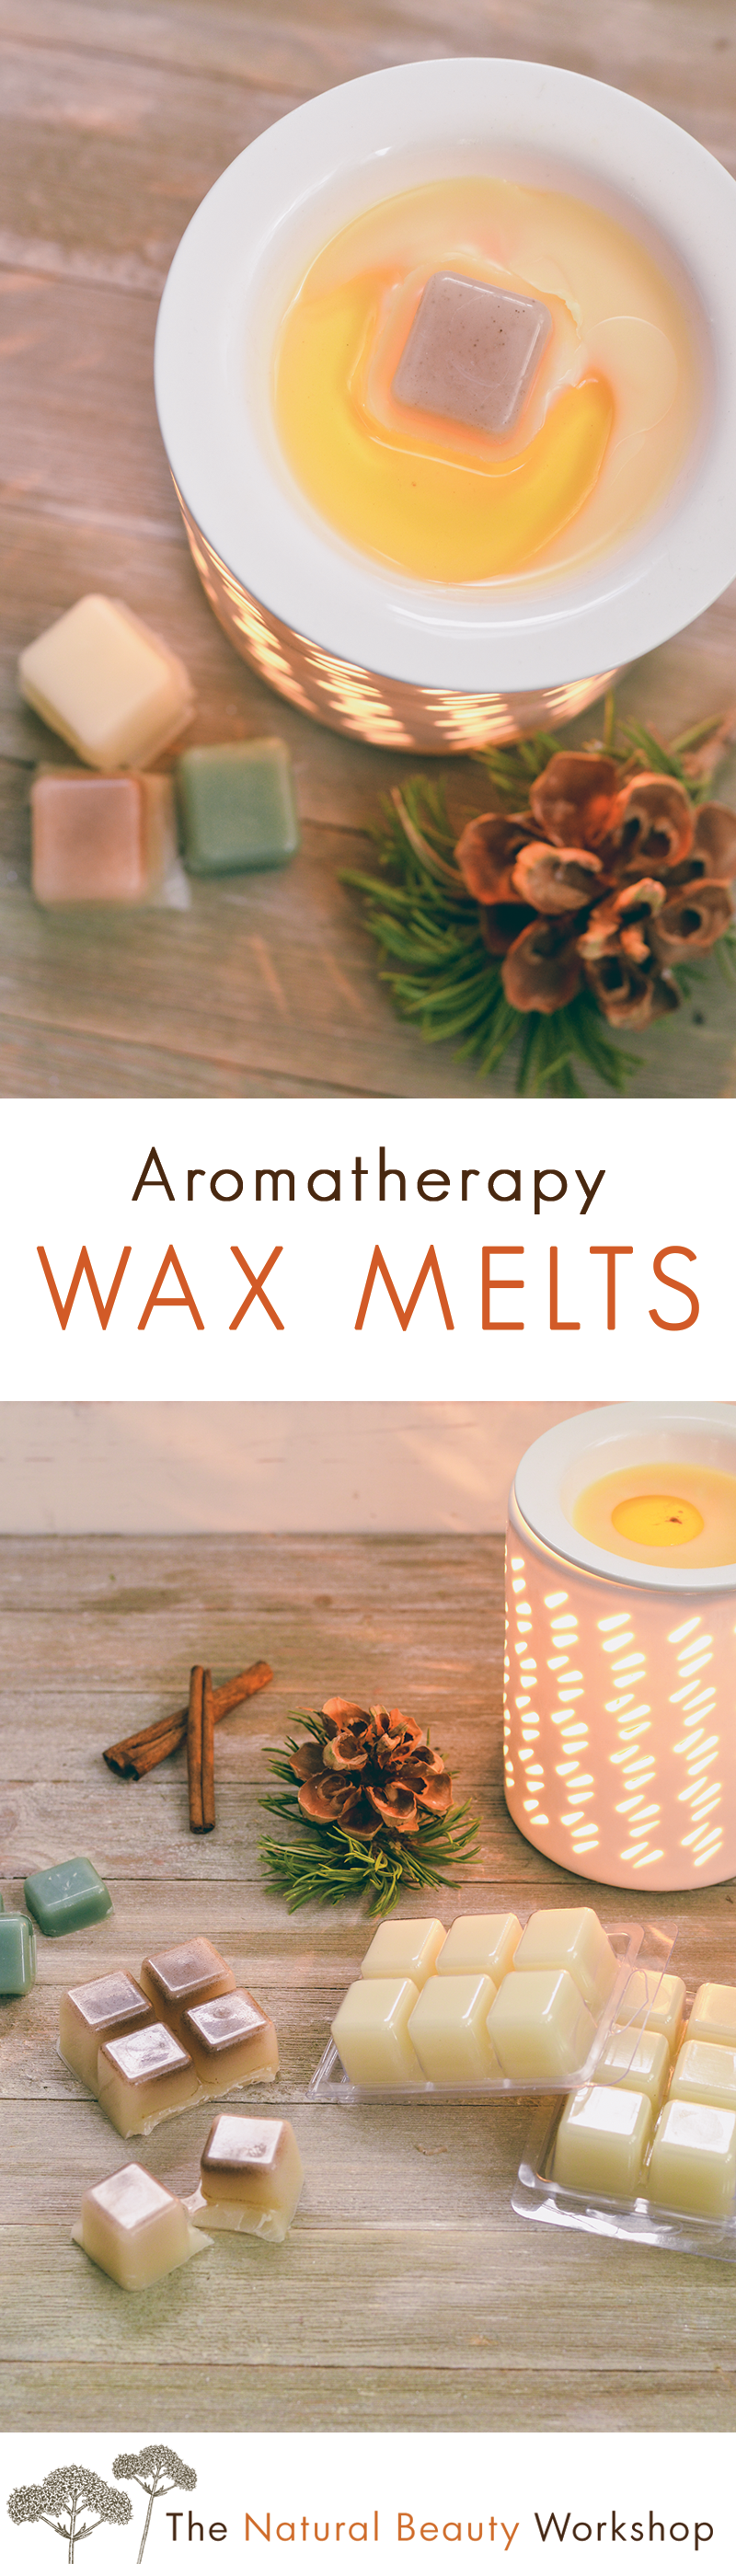 Aromatherapy Wax Melts Six Ways Wax melts recipes, Diy